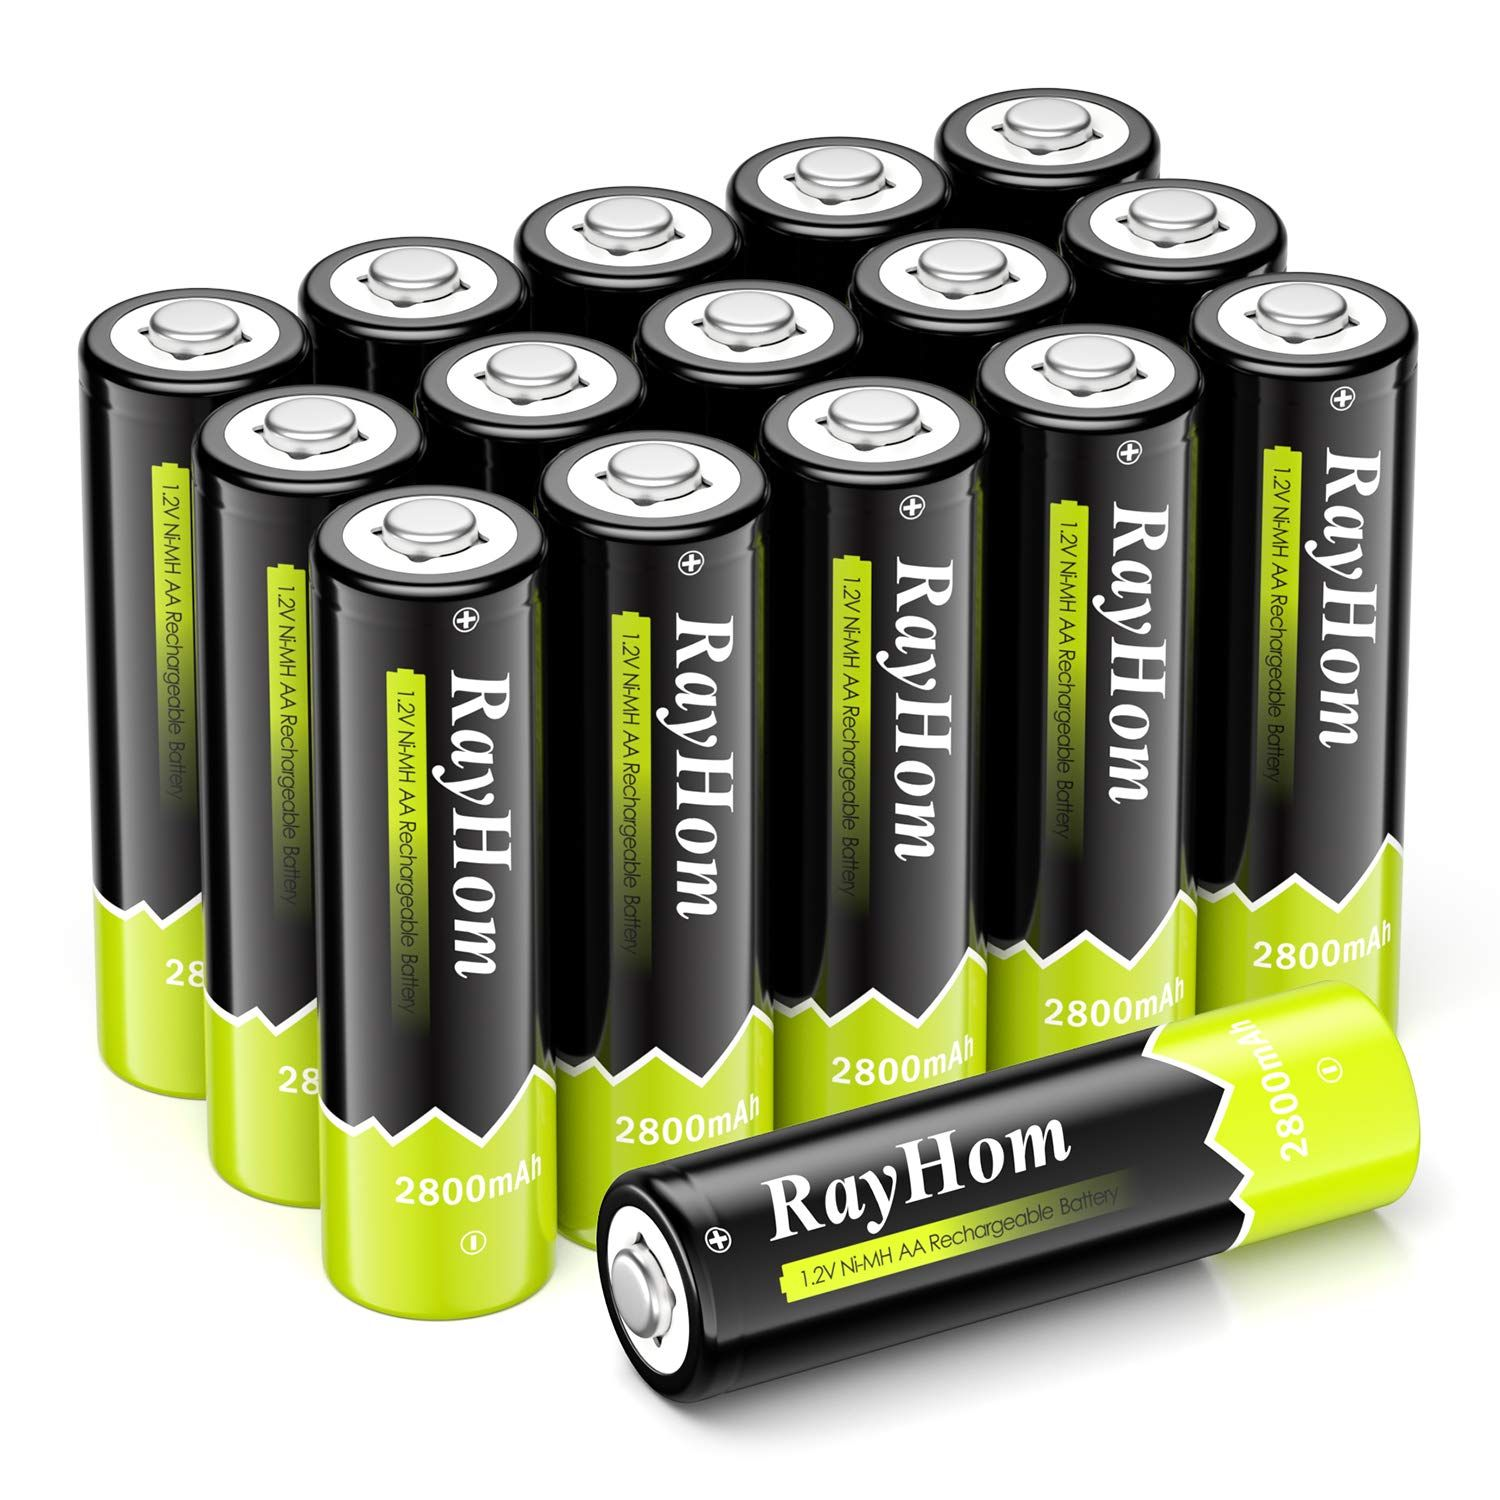 Rayhom Aa Rechargeable Batteries 2800mah Ni Mh Battery 16 Pack To View Further For This It Household Batteries Rechargeable Batteries Aaa Battery Charger